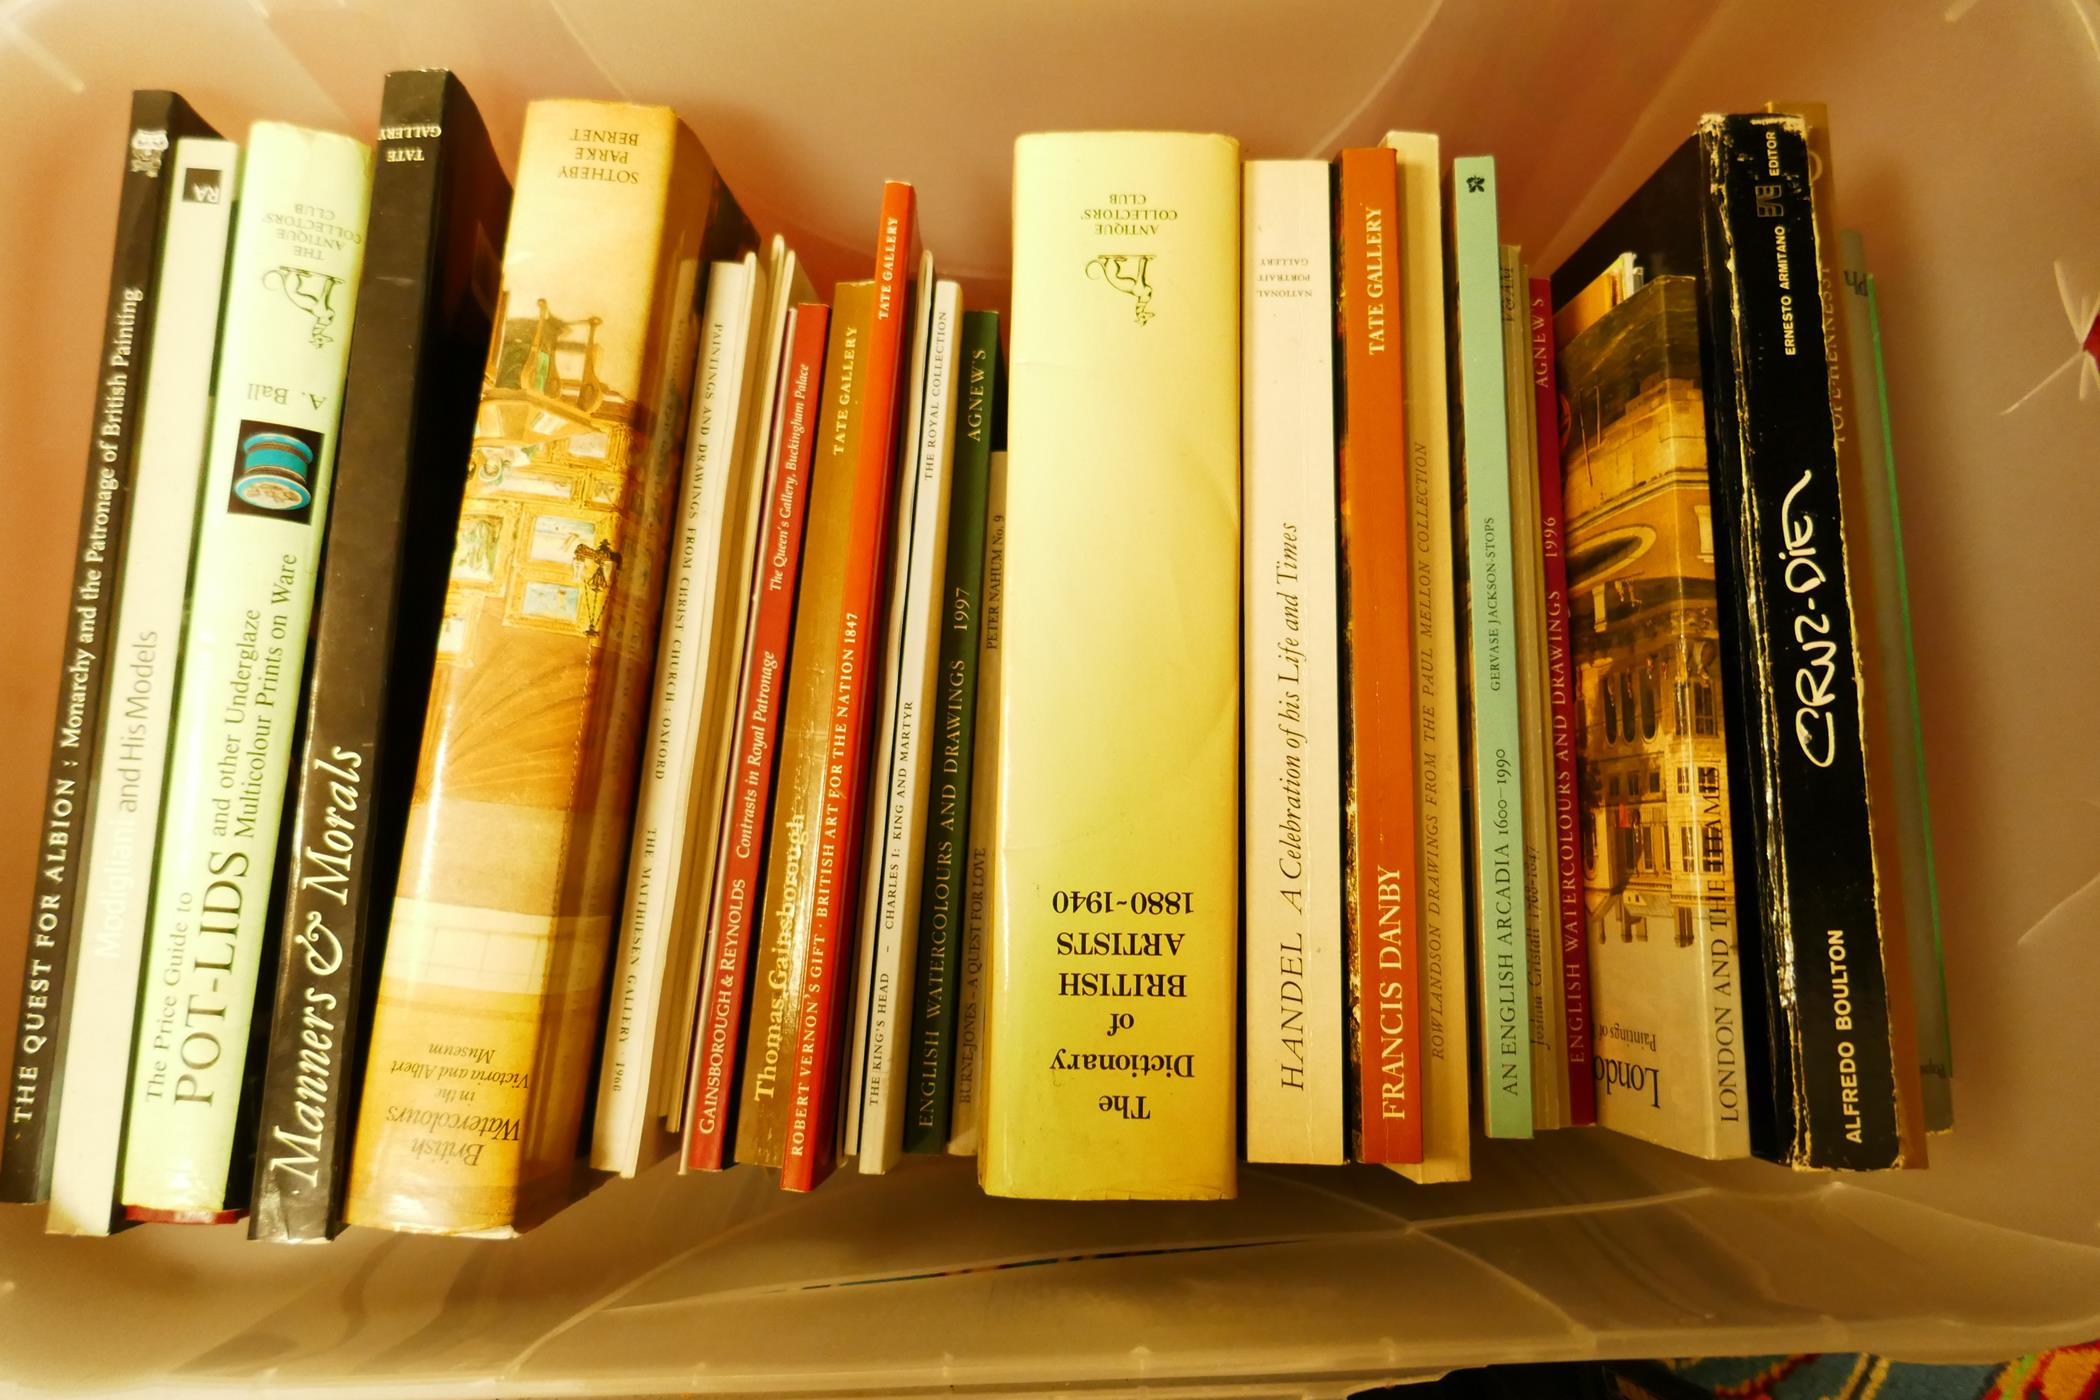 A box of good books on art and collecting including The Dictionary of British Artists, British